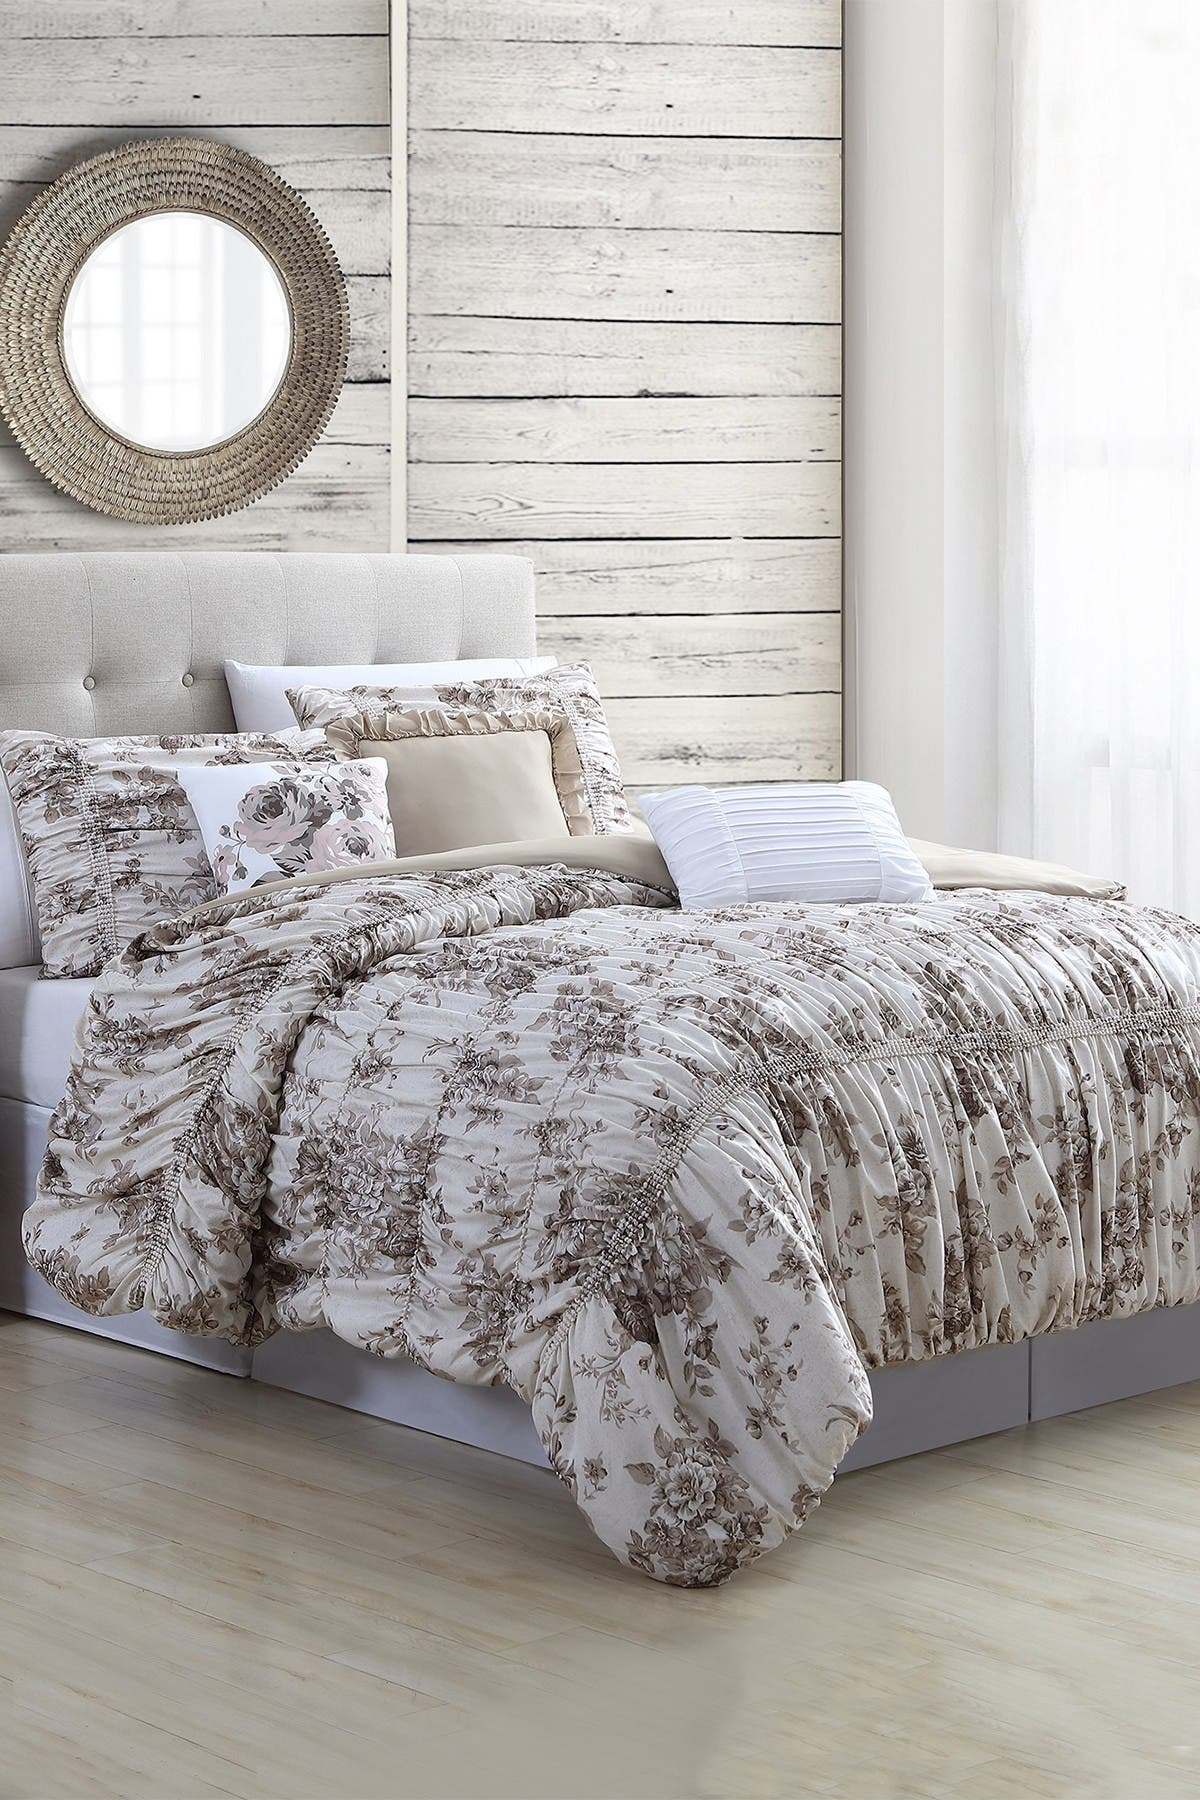 Image of Modern Threads 6-Piece Printed Textured Comforter Set - Bounty Floral - King